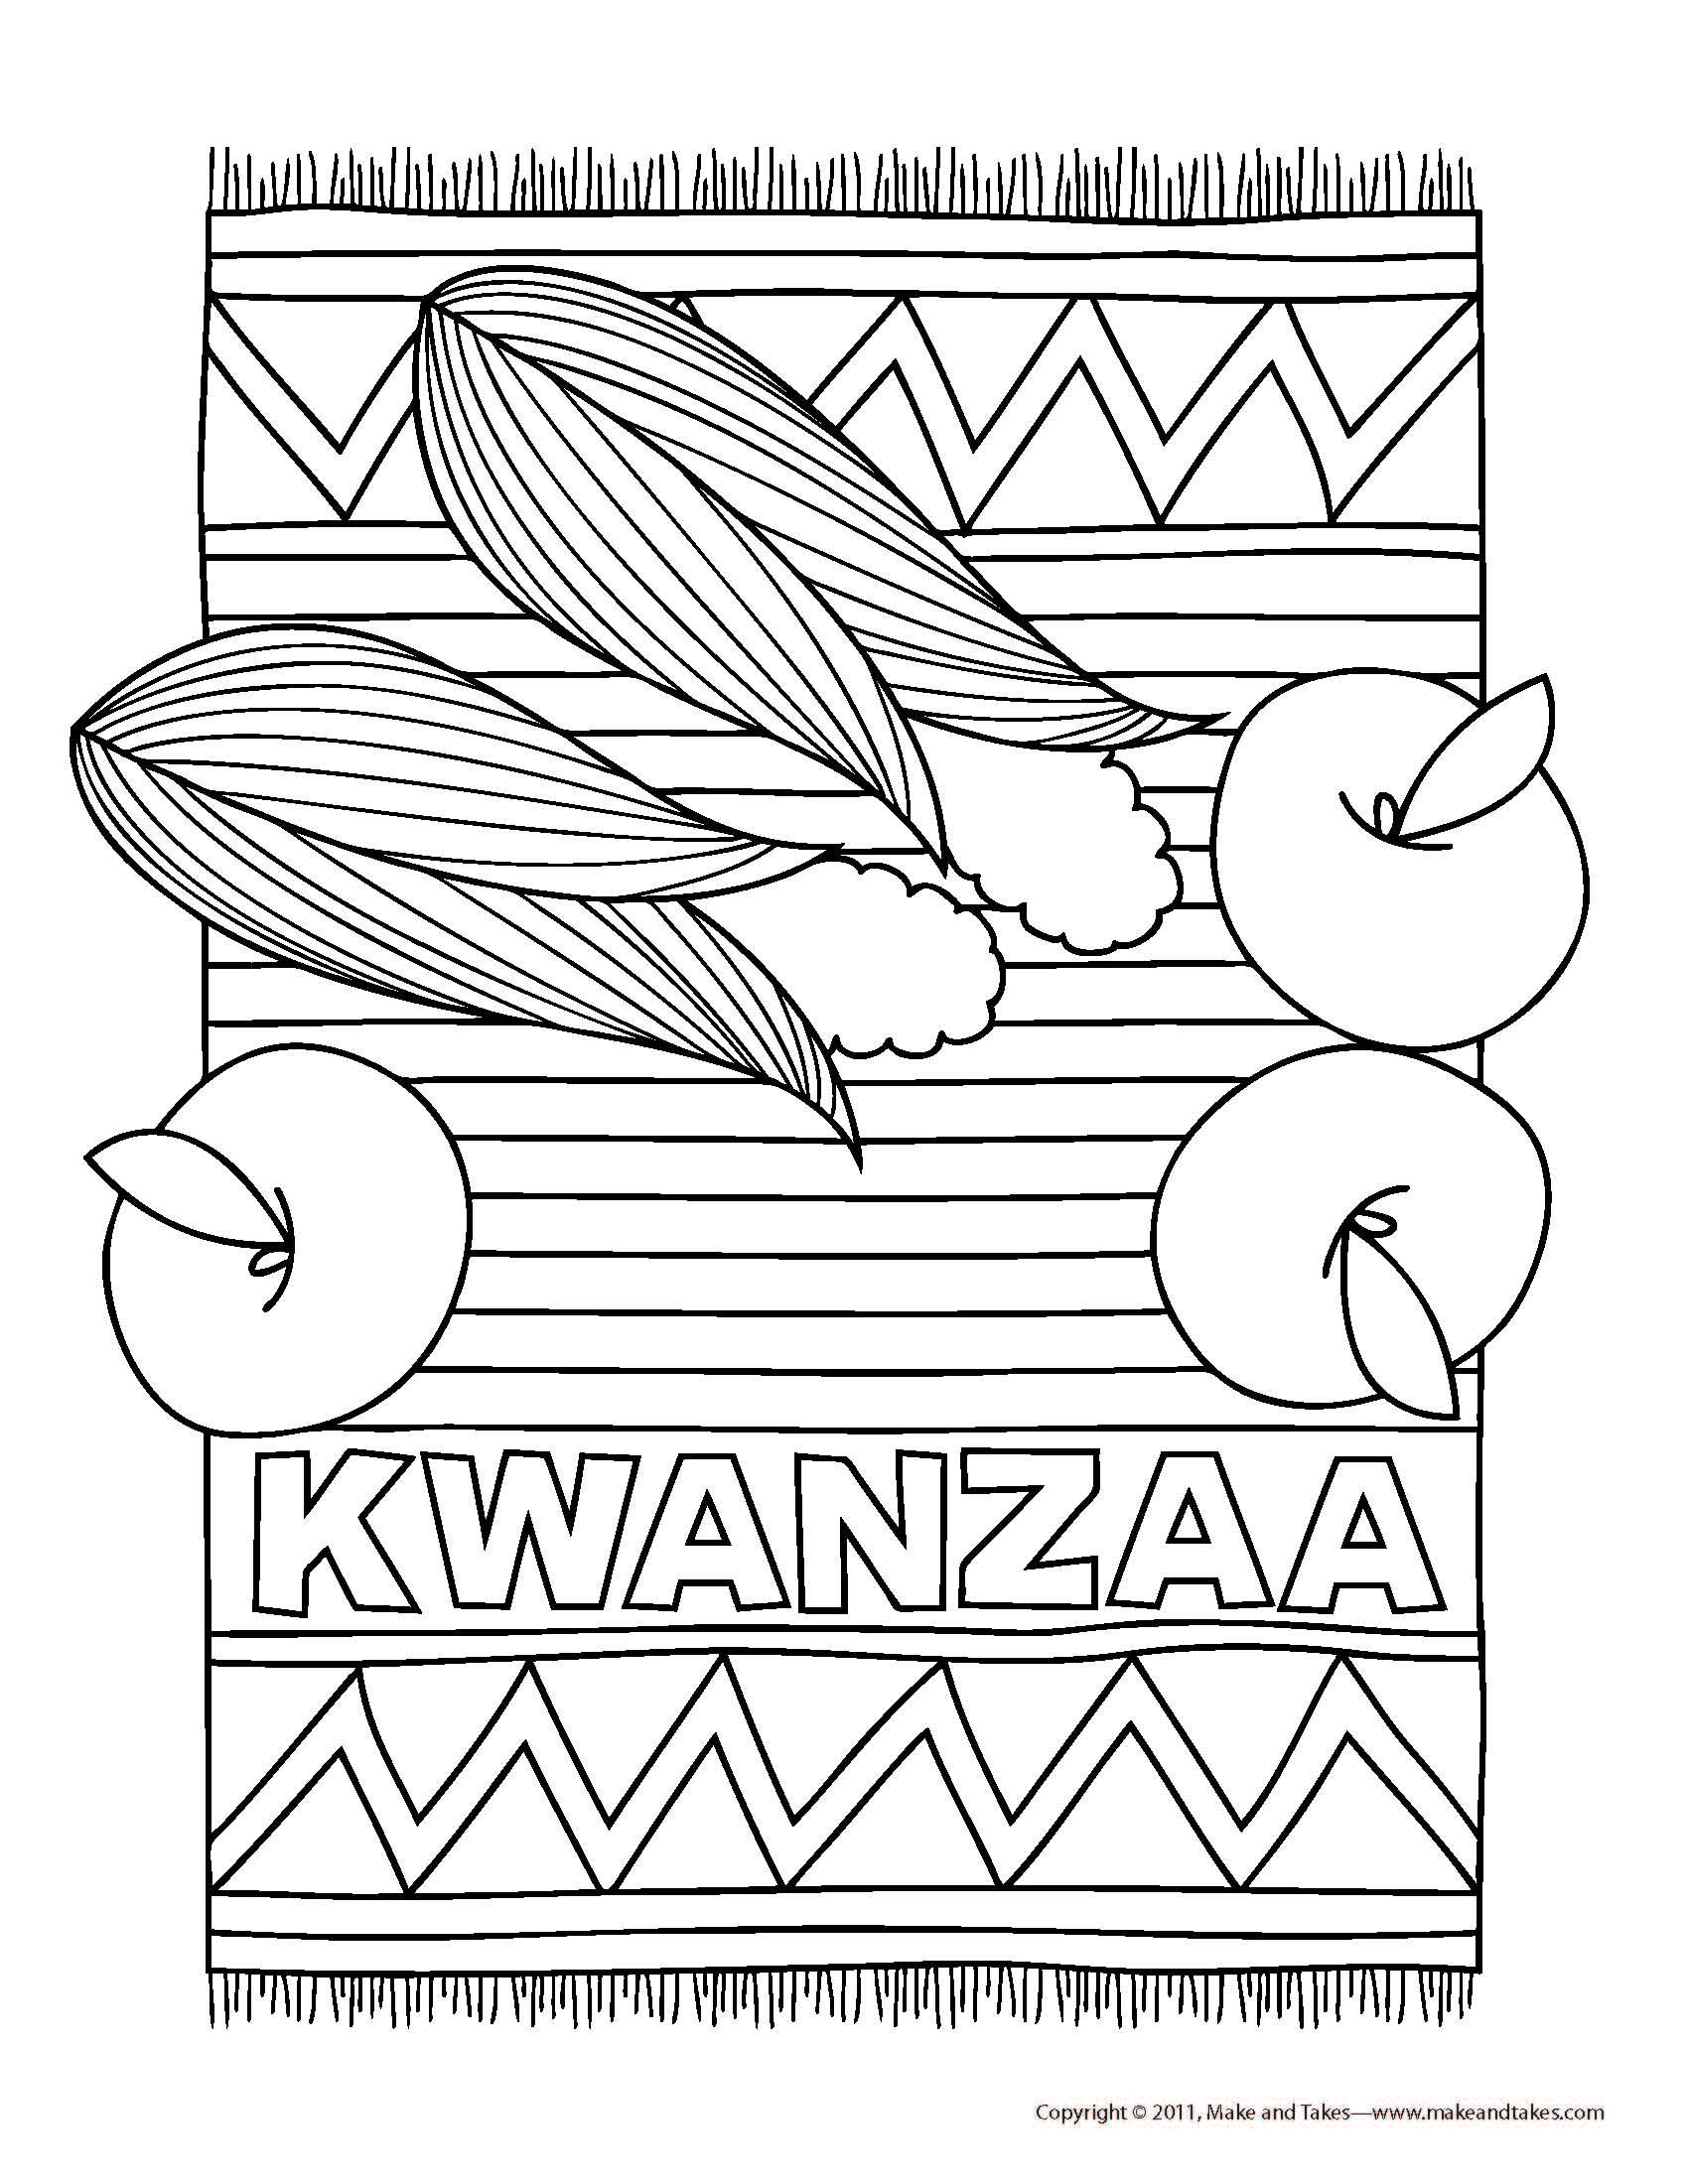 Kwanzaa Colouring Page Find More Information About Kwanzaa At Fun Printables For Kids